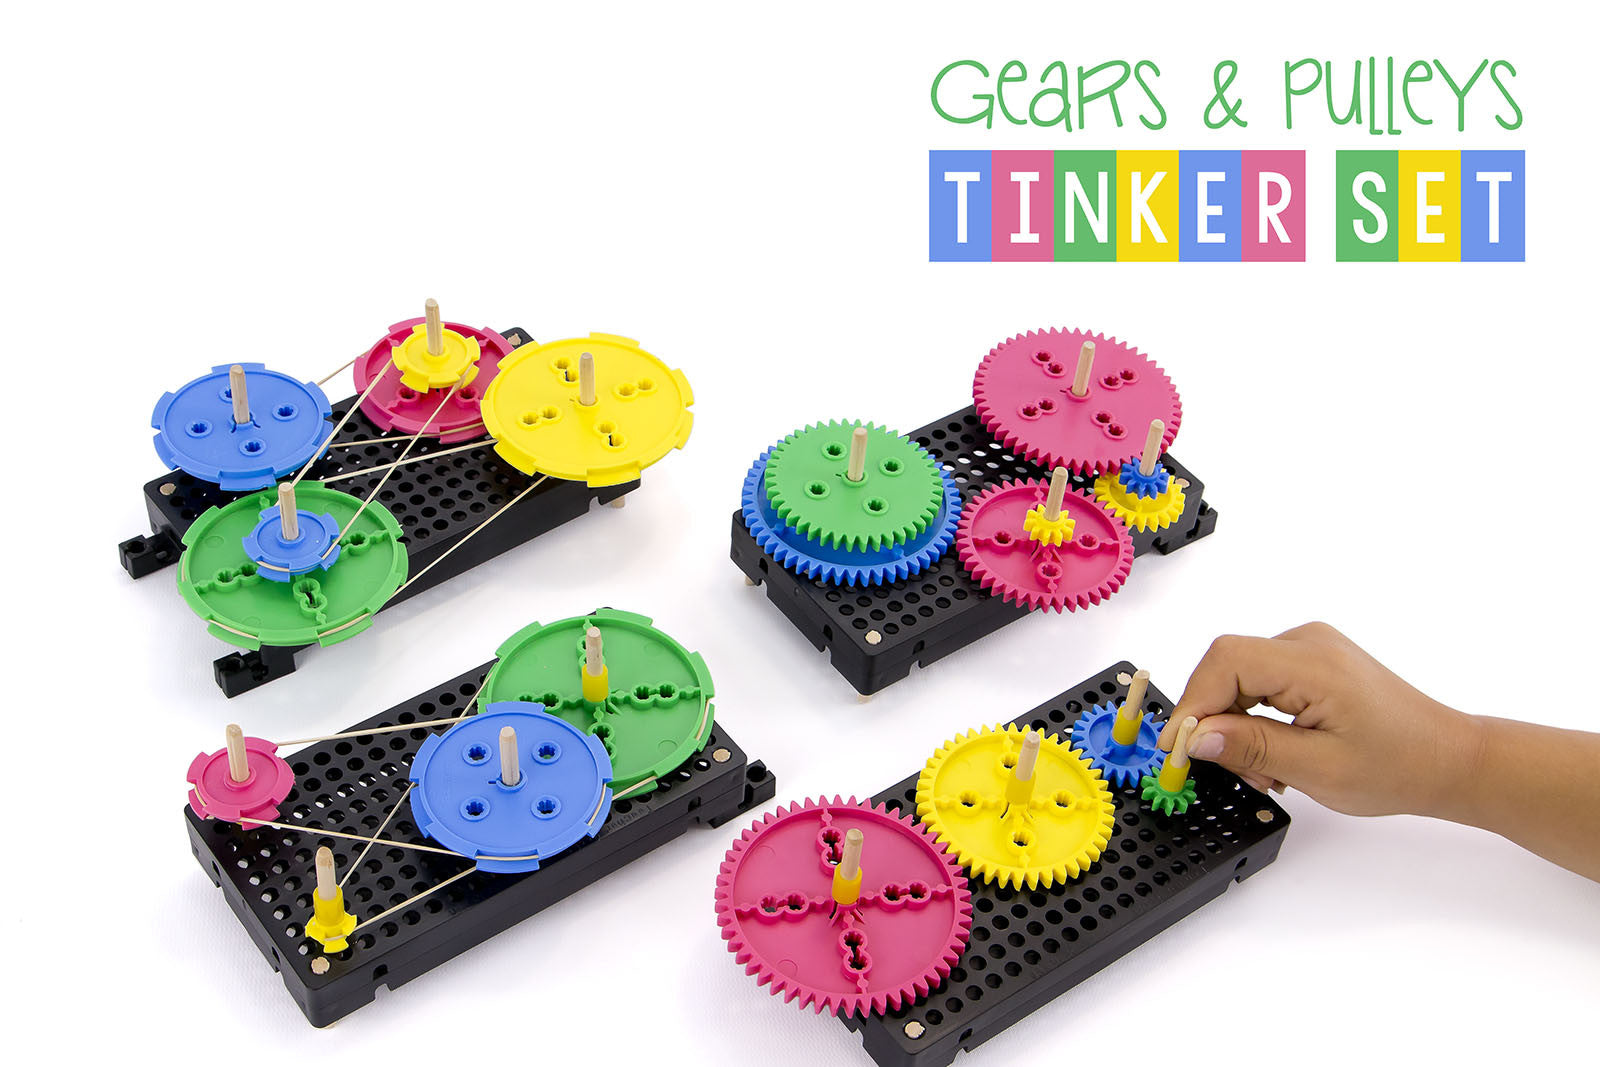 Gears & Pulleys Tinker Set Activity Documents